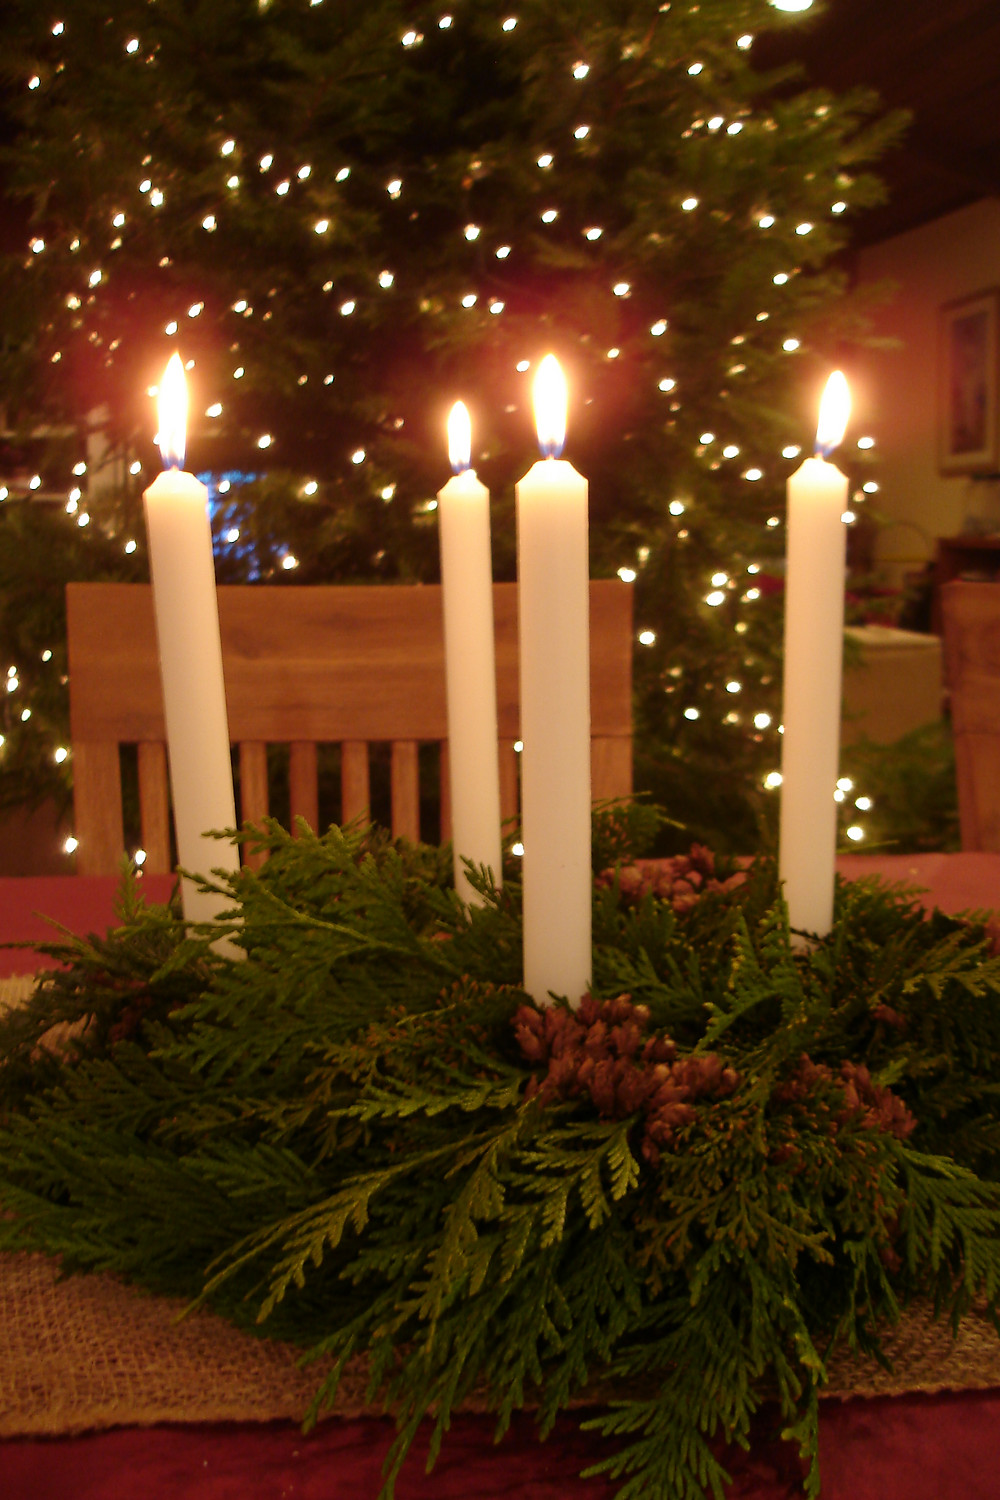 Seedpod Farm Advent Wreath